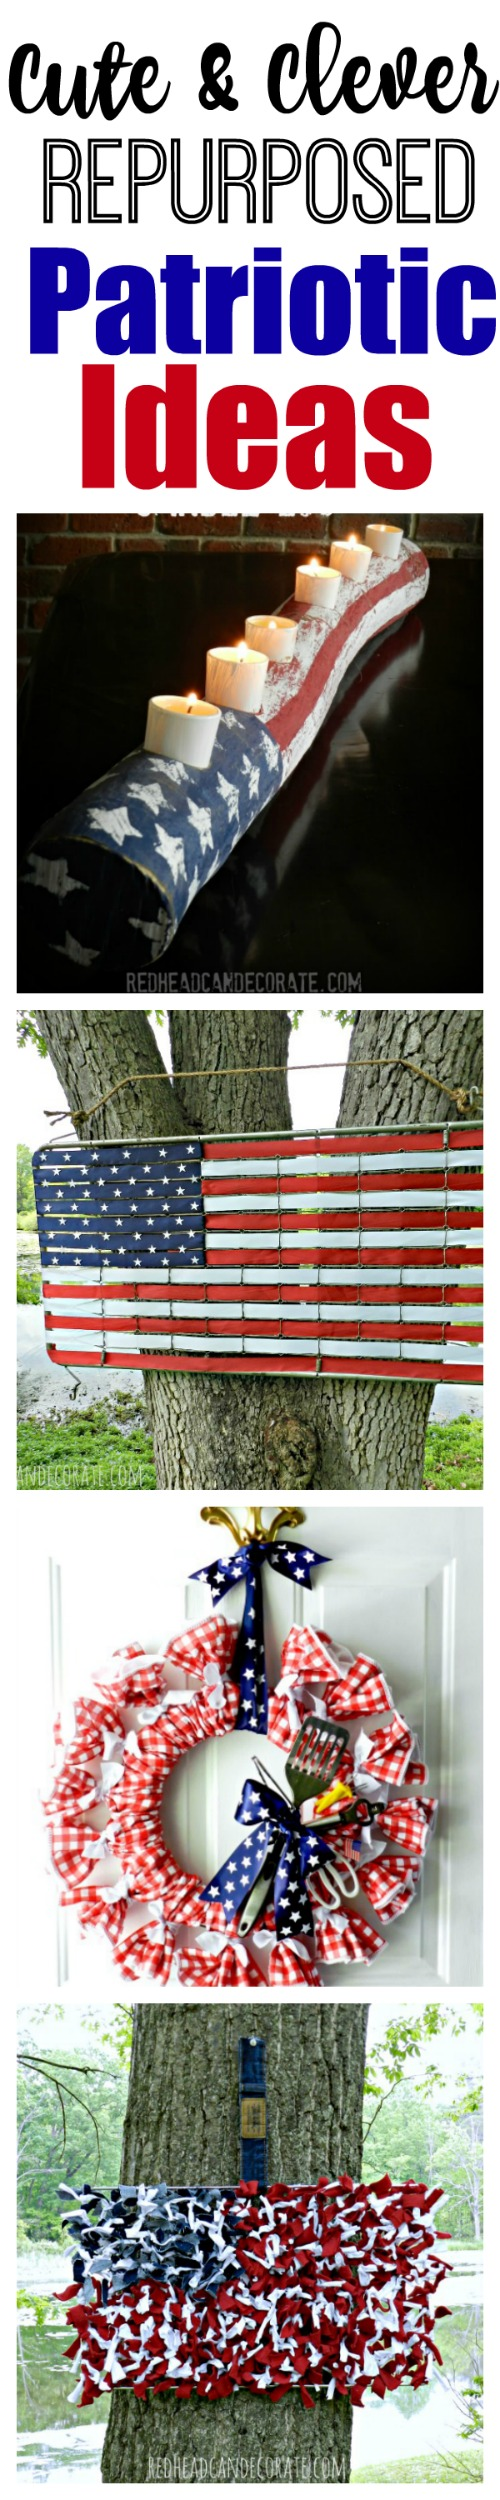 These repurposed patriotic ideas are so creative and fun!